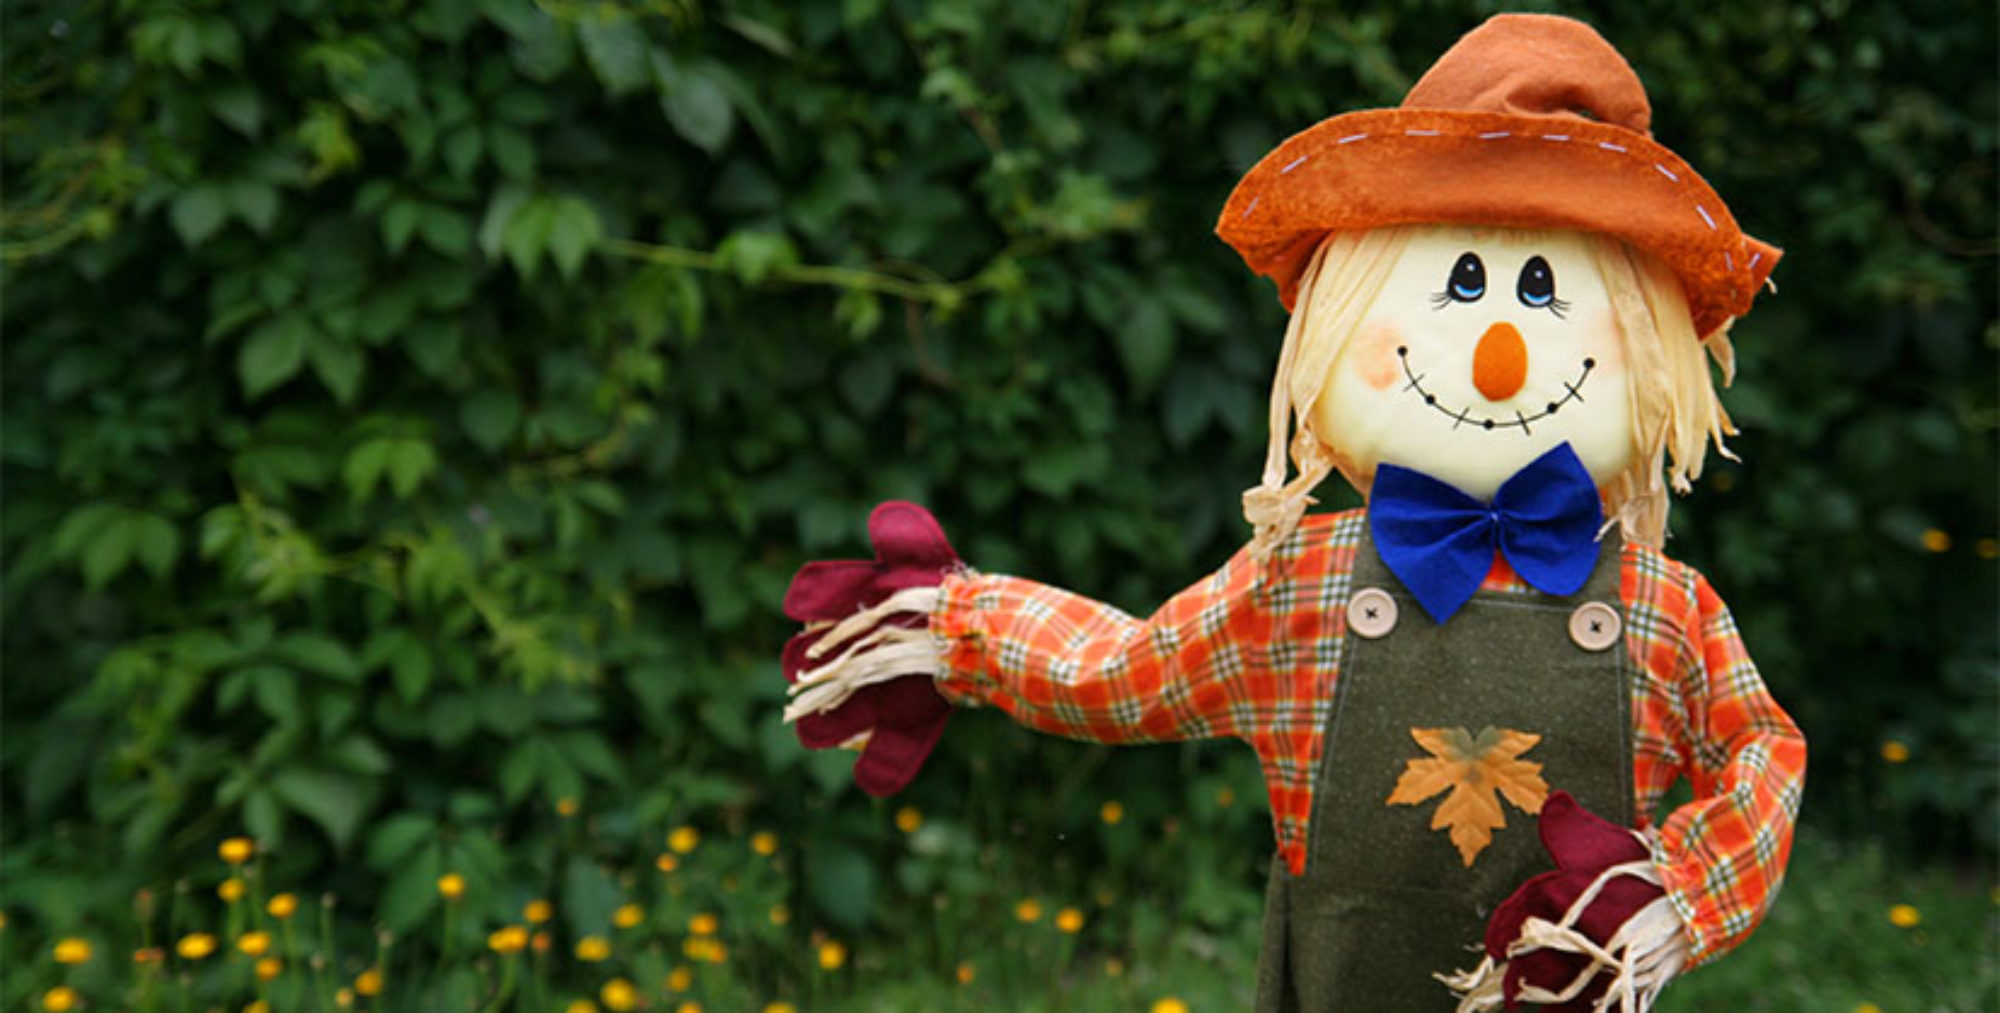 11th Wilmslow Rotary Scarecrow festival